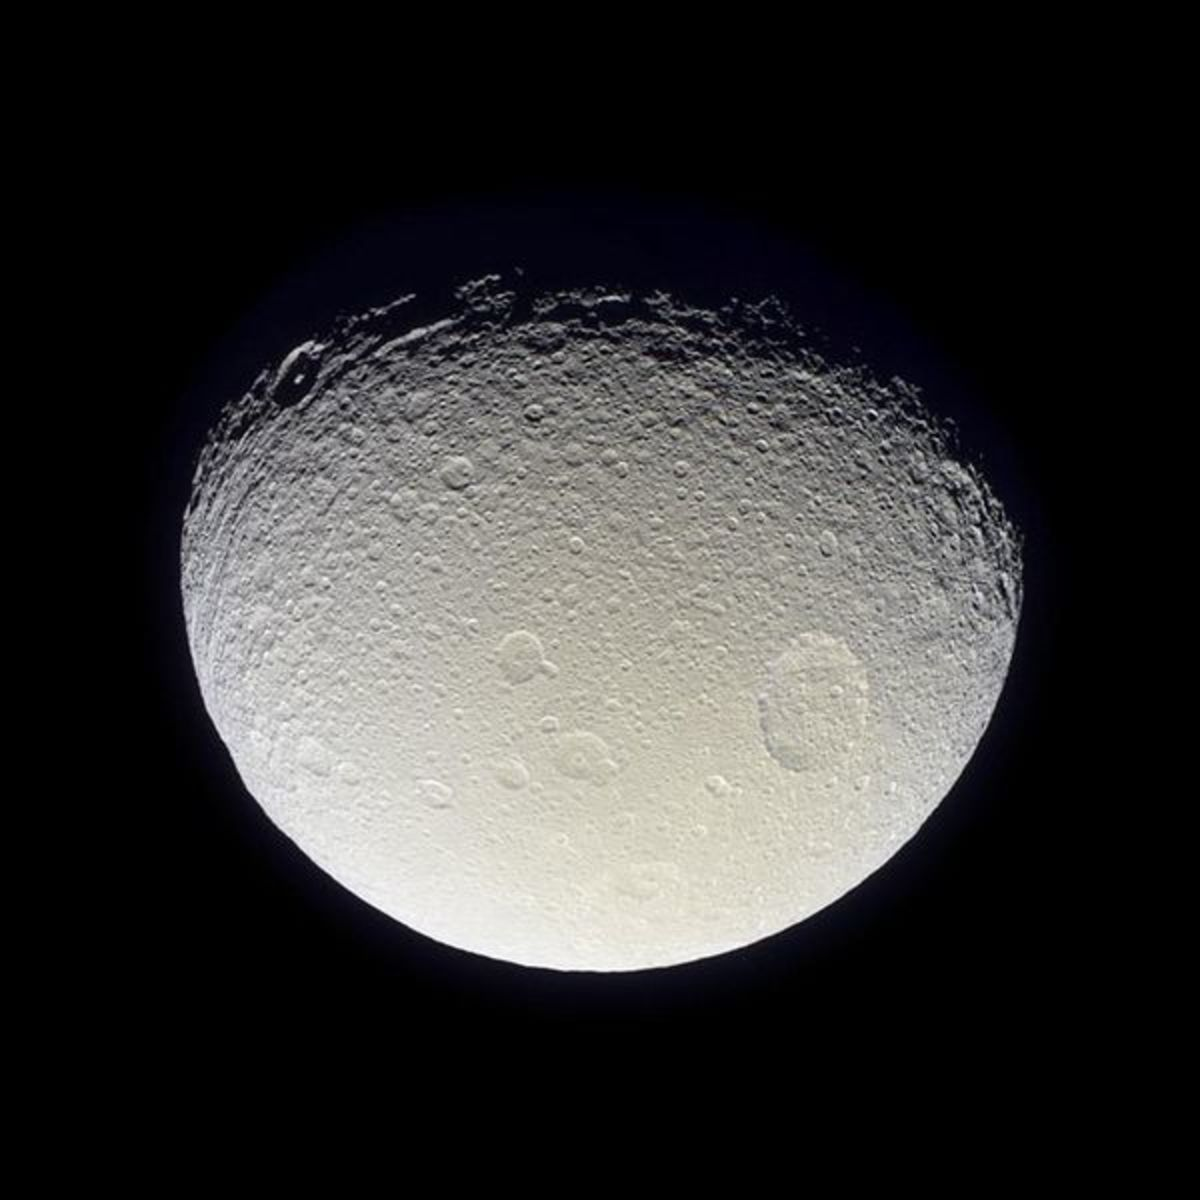 The moon does not have twilight because it has no atmosphere.